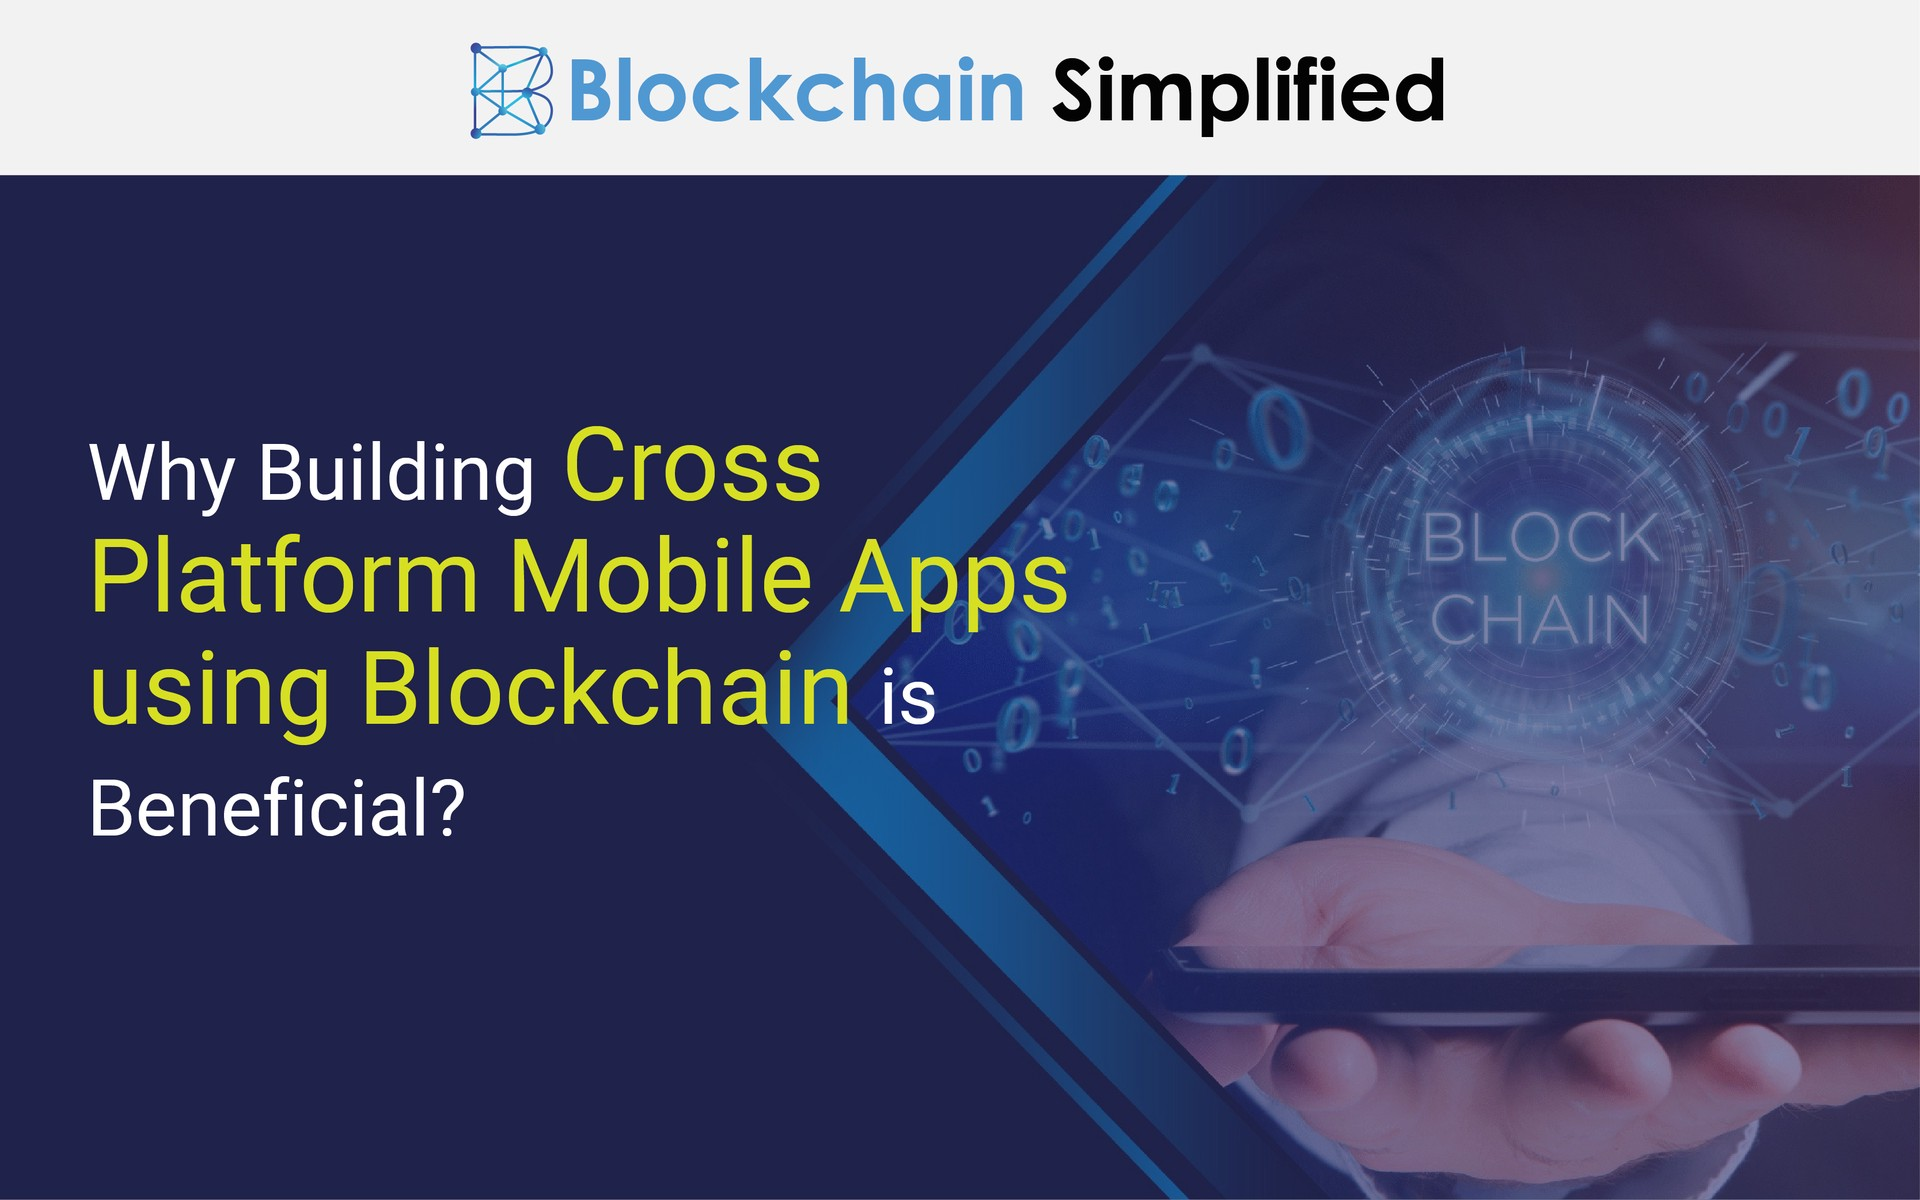 Mobile apps using Blockchain main